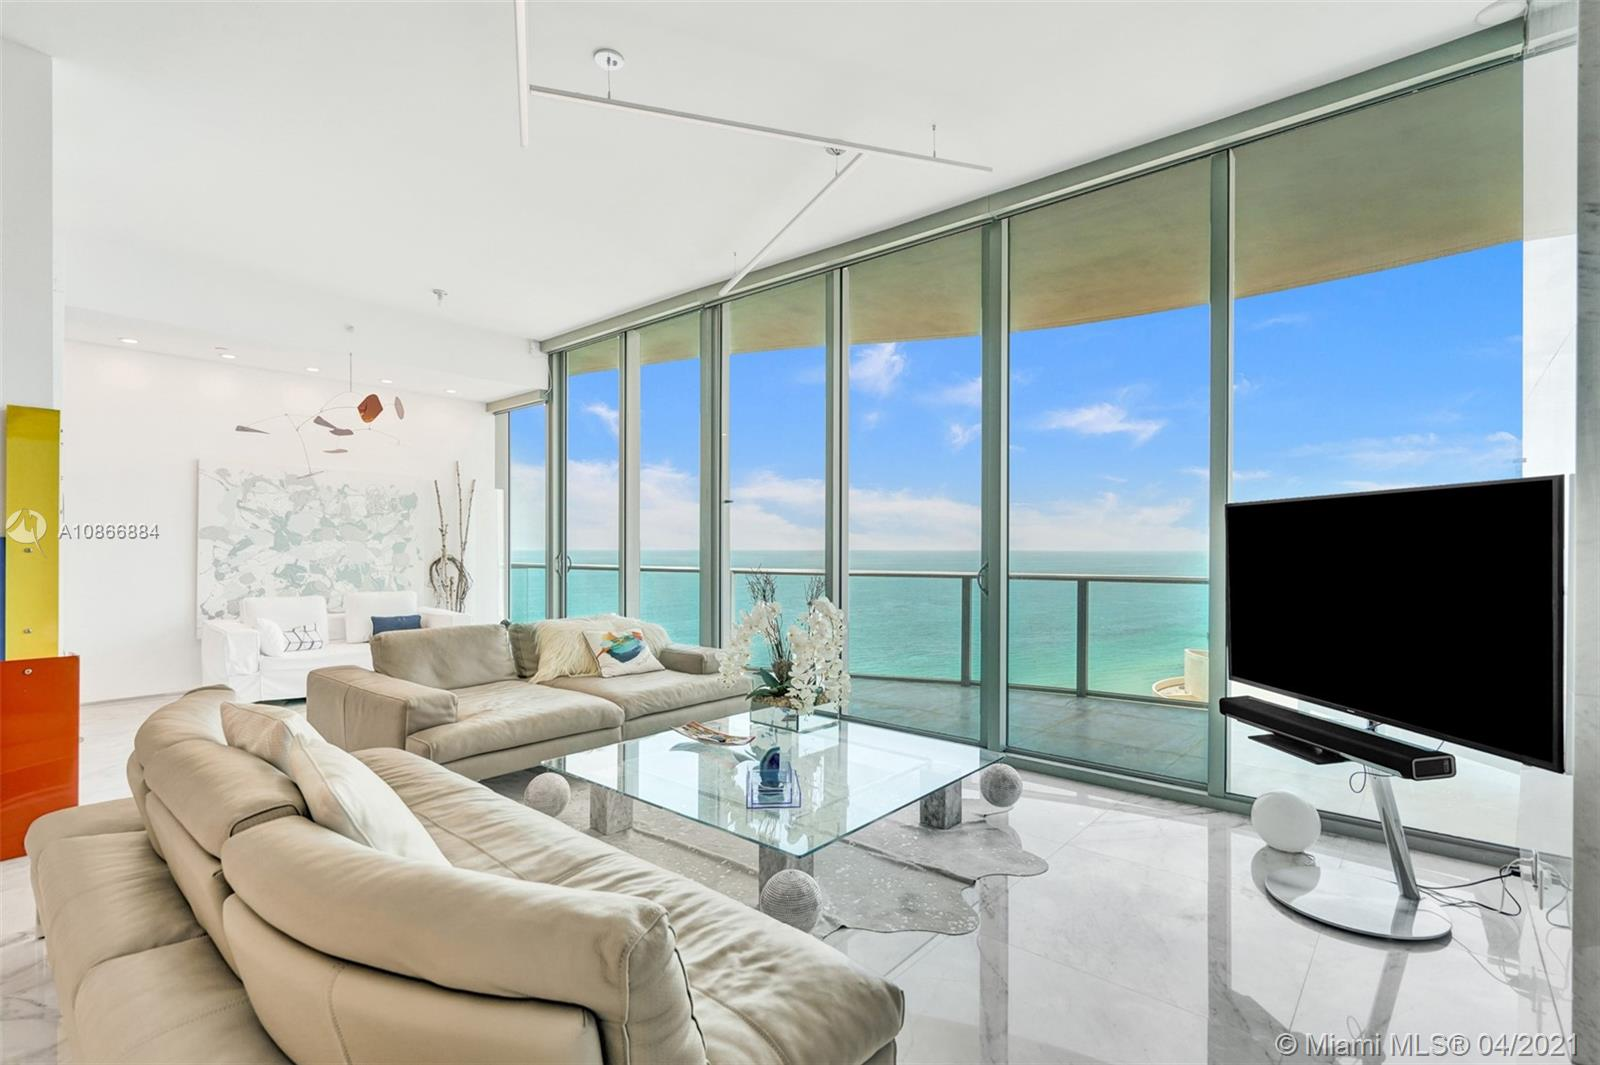 Incredible protected views from this spacious 25th floor 2 bed + Den condo in the heart of Sunny Isles Beach. 11ft high ceilings 3 marble bathrooms, Wind protected balcony, Maids room with full bathroom and service entrance, 3' x 3' white marble floors and columns,  Luxury master suite with interior glass walls. 29' of glass in living room, Electric window treatments, Stunning Ocean, City and Park views! Designer unit! Feels a lot bigger inside than the Sq Ft shown. Must be seen!  Chateau Beach is a quiet, elegant, exclusive building offering luxury & lifestyle w/ 5 Star amenities including a relaxation room w/ aromatherapy jacuzzi, Beach & Pool towel and food service, cigar room, home theatre, wine lounge, Breakfast bar, full time Concierge desk and much more.